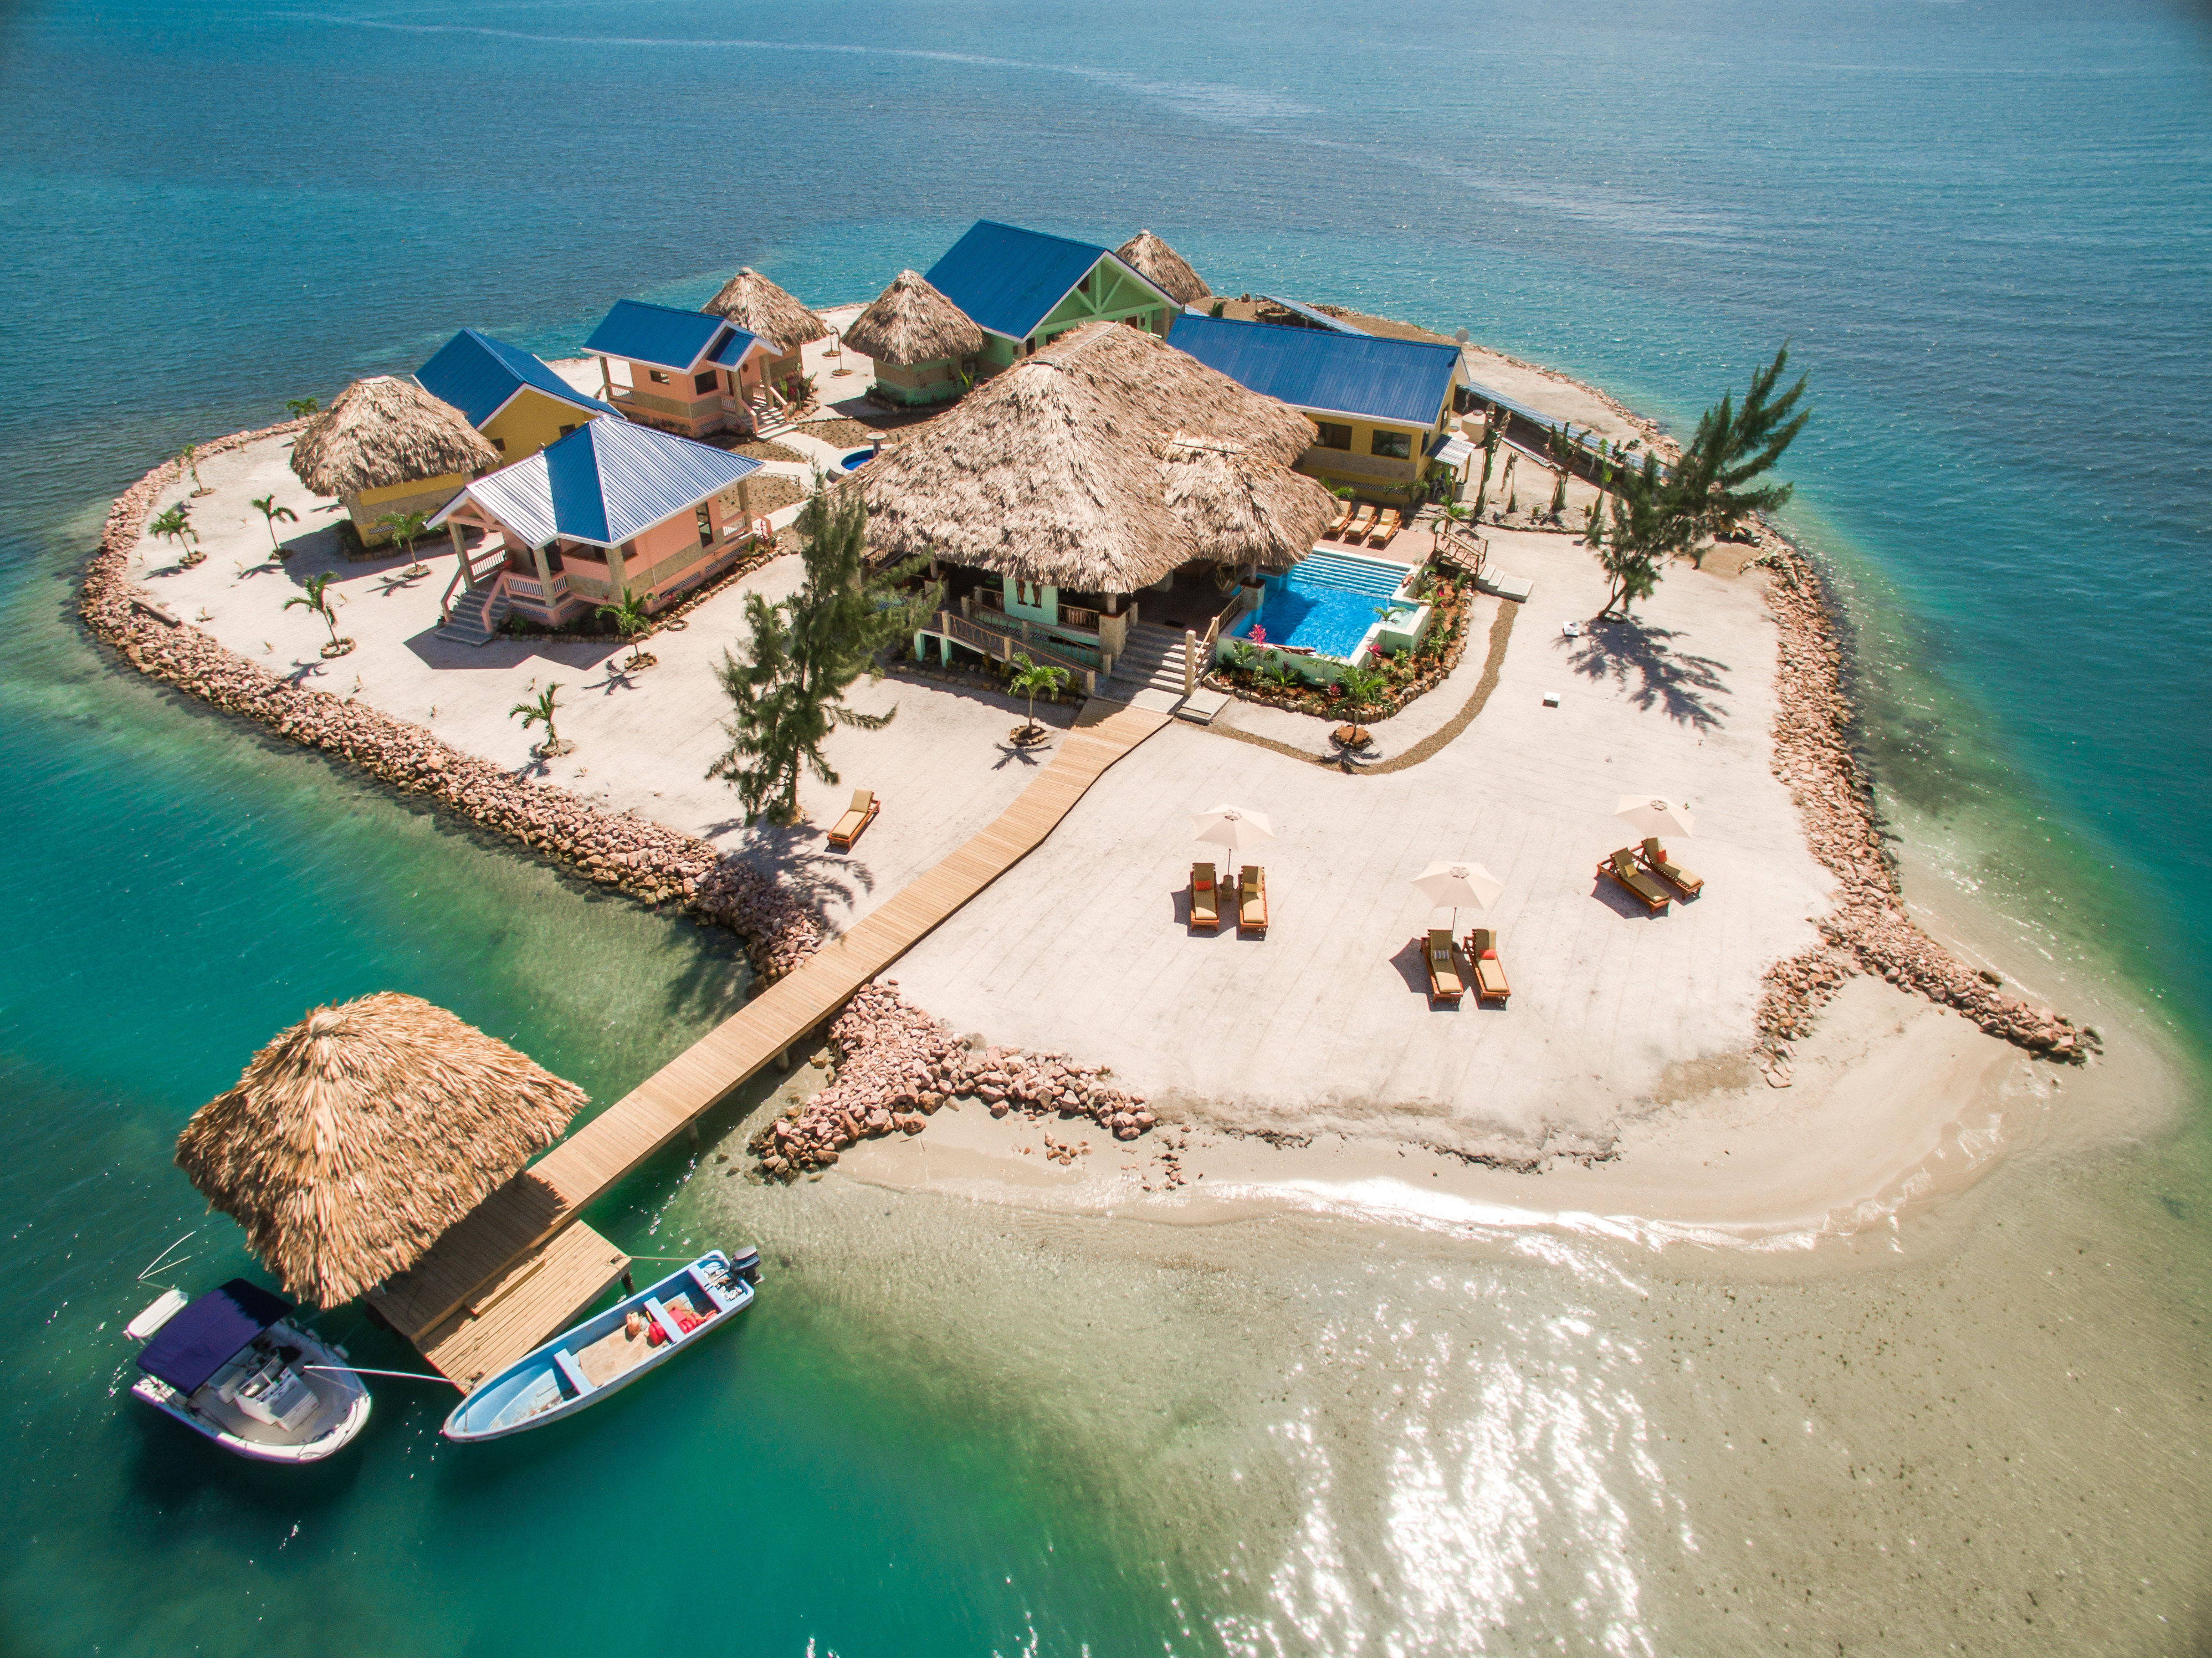 An aerial view of a sandy island with a large thatched roof house surrounded by smaller homes with solar panels.